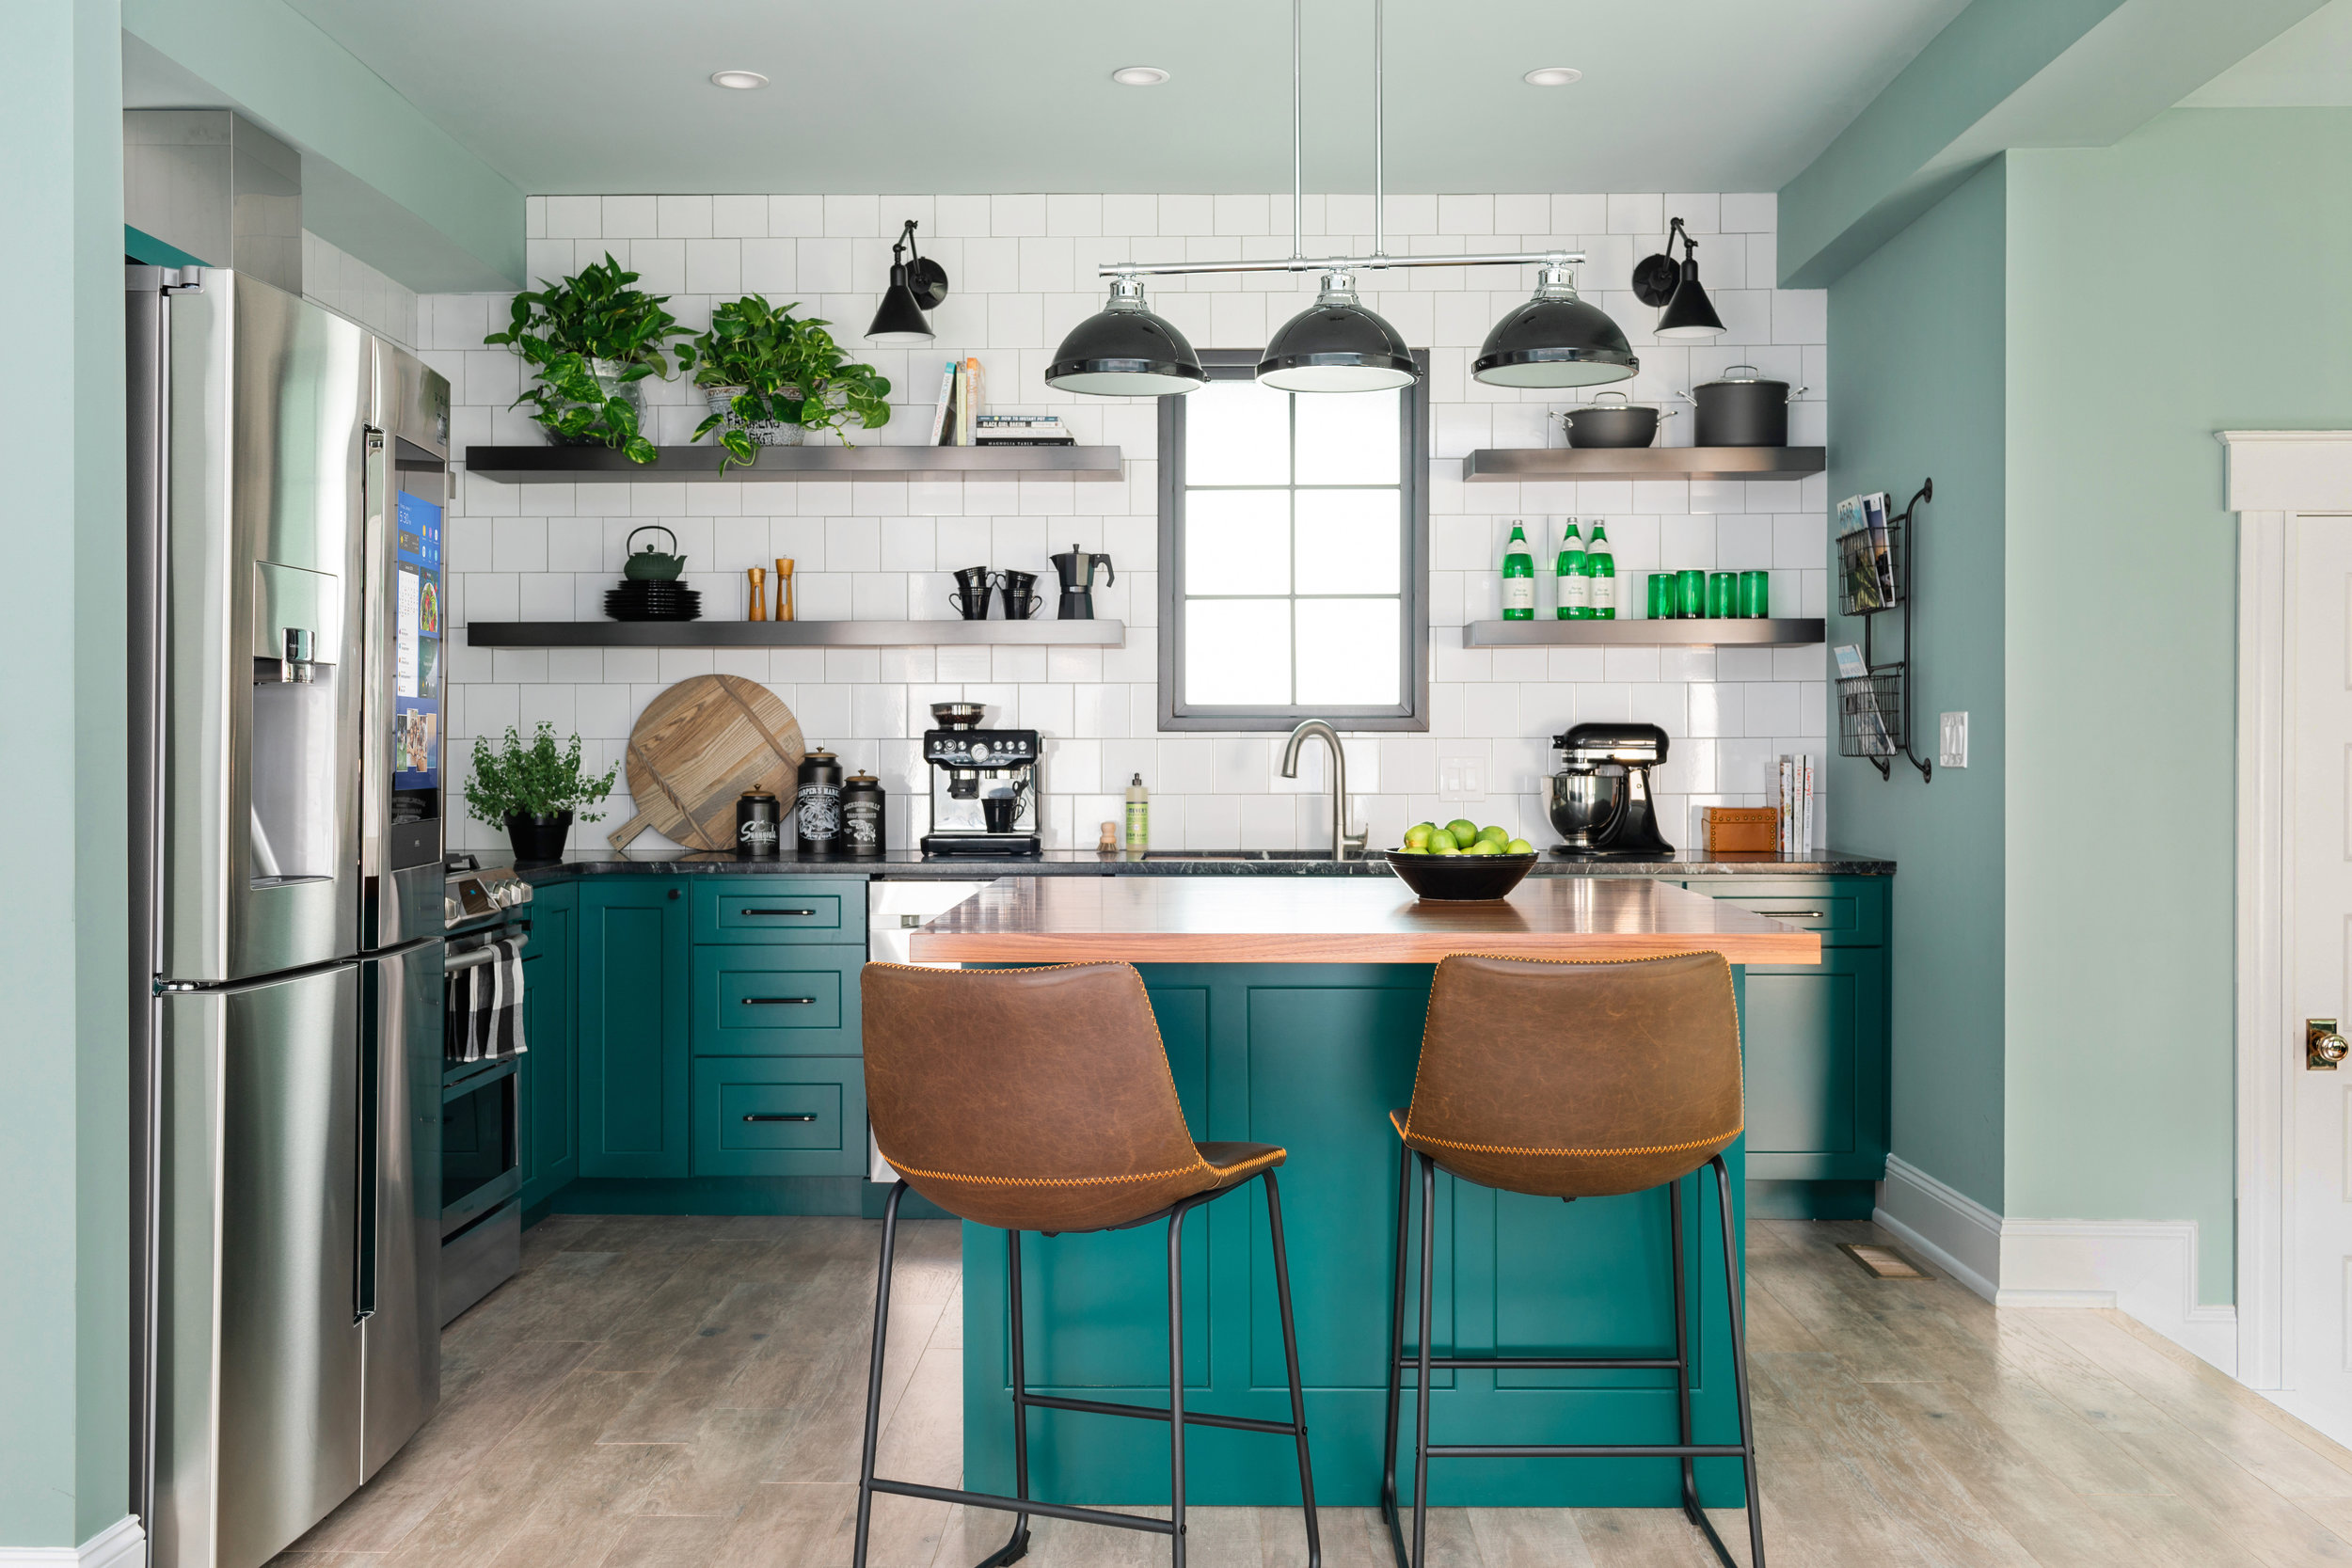 HGTV Urban Oasis 2018 - Kitchen.jpg